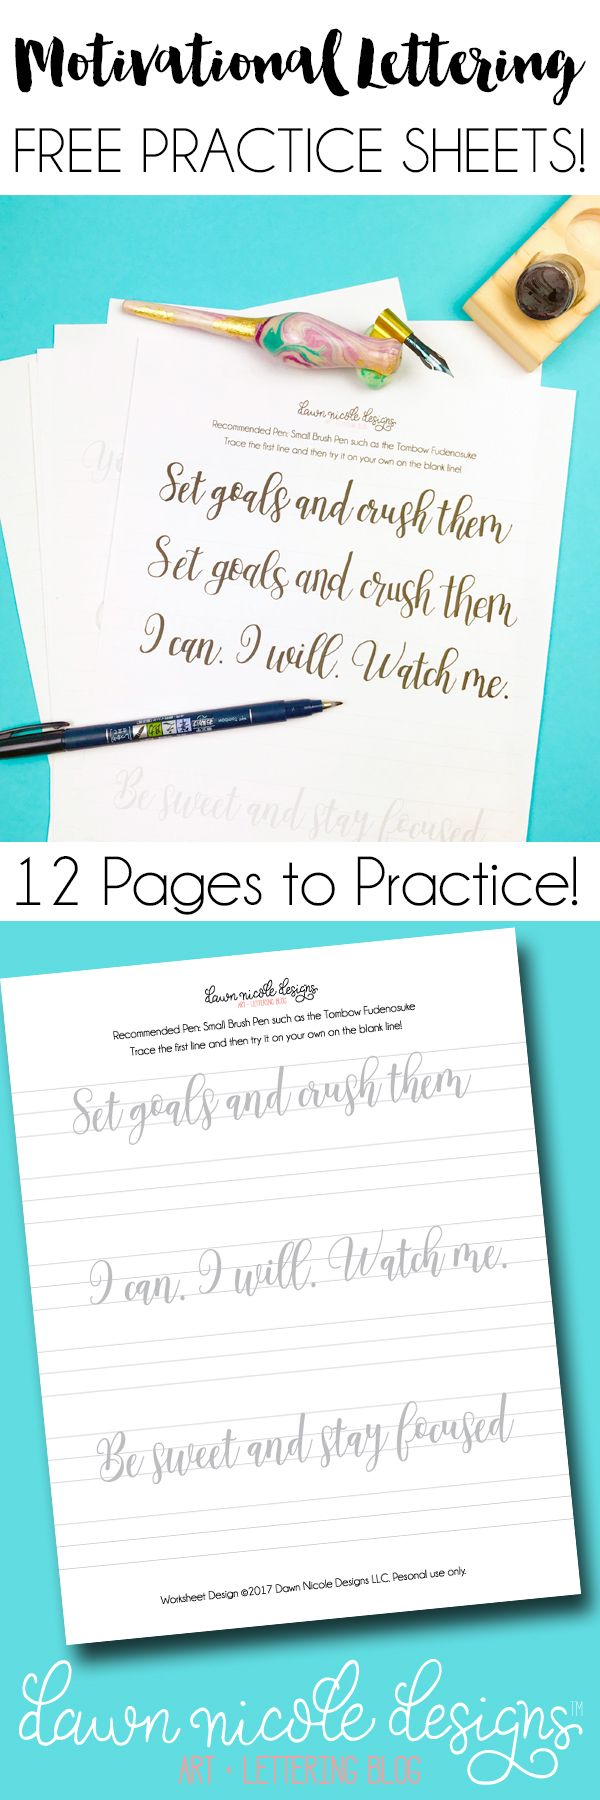 Motivational Free Calligraphy Practice Sheets | Graphic Design